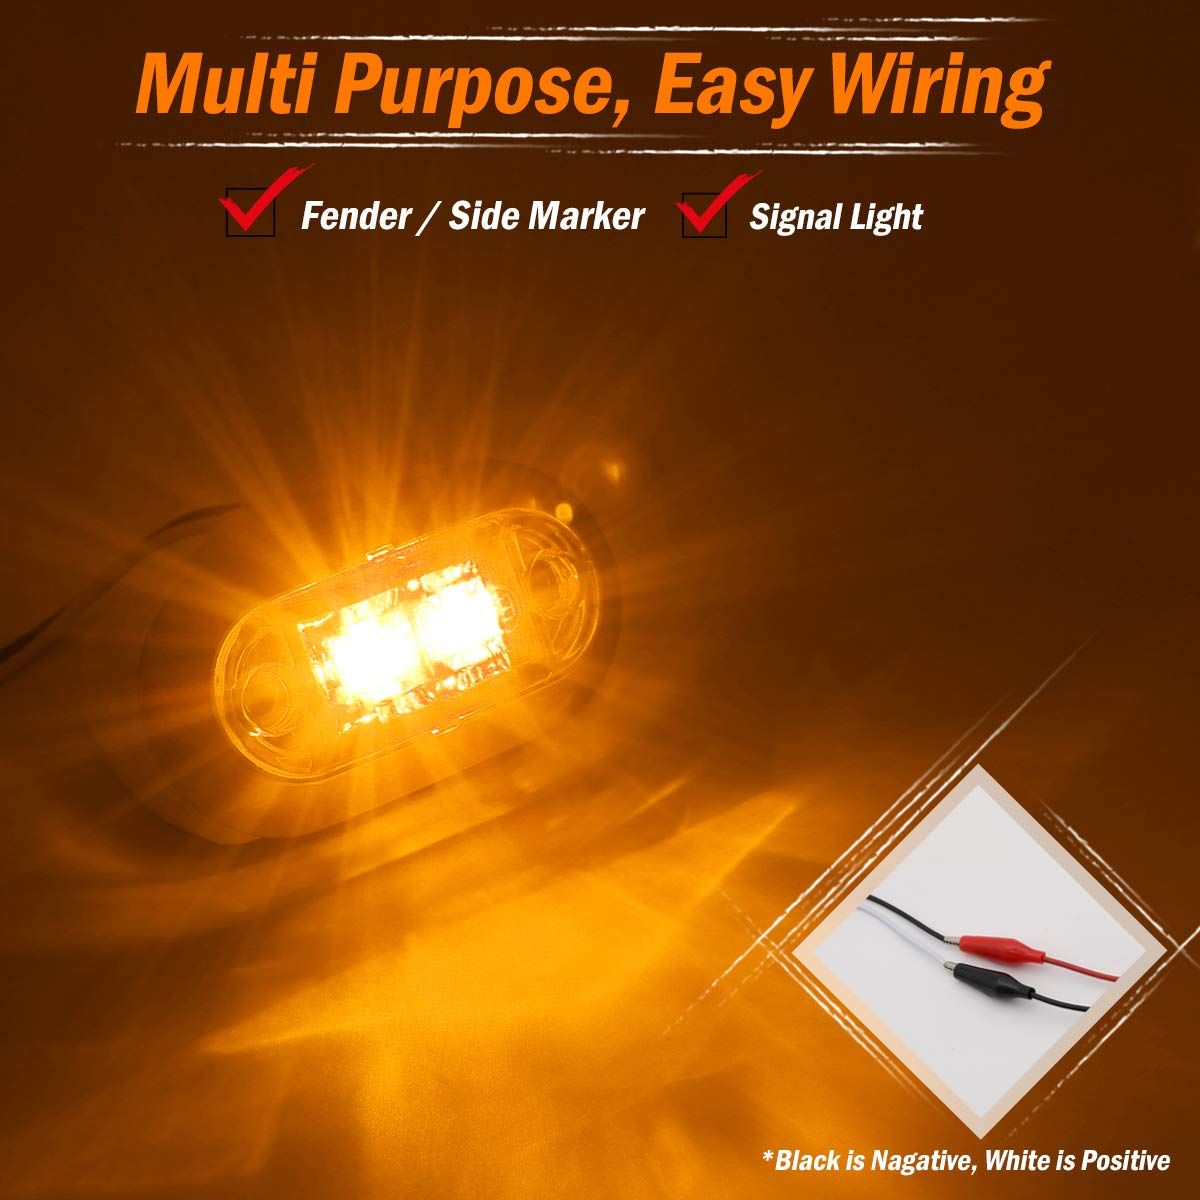 """2.5/"""" Inch Oval Clear Lens 10 Amber /& 10 Red Oval 2 LEDs Surface Mount SMD Extra Bright Side Marker Clearance Lights Trailer Jeep Van Truck SUV Bus RV w//Chrome 10-30V DC LM-CHS Pack of 20 Meerkatt"""